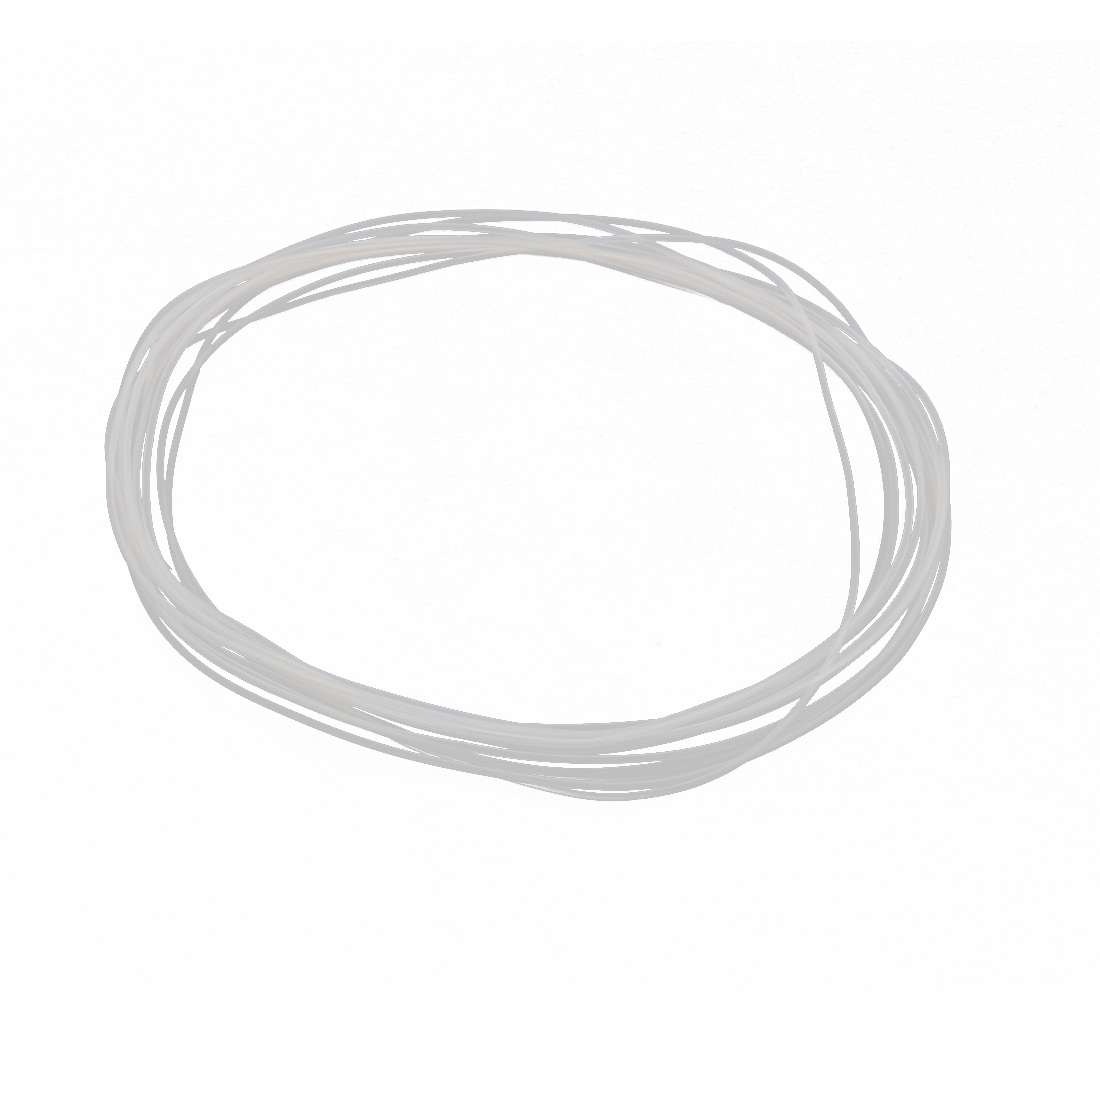 0.96mmx1.26mm PTFE Resistant High Temperature Transparent Tubing 5Meters 16.4Ft